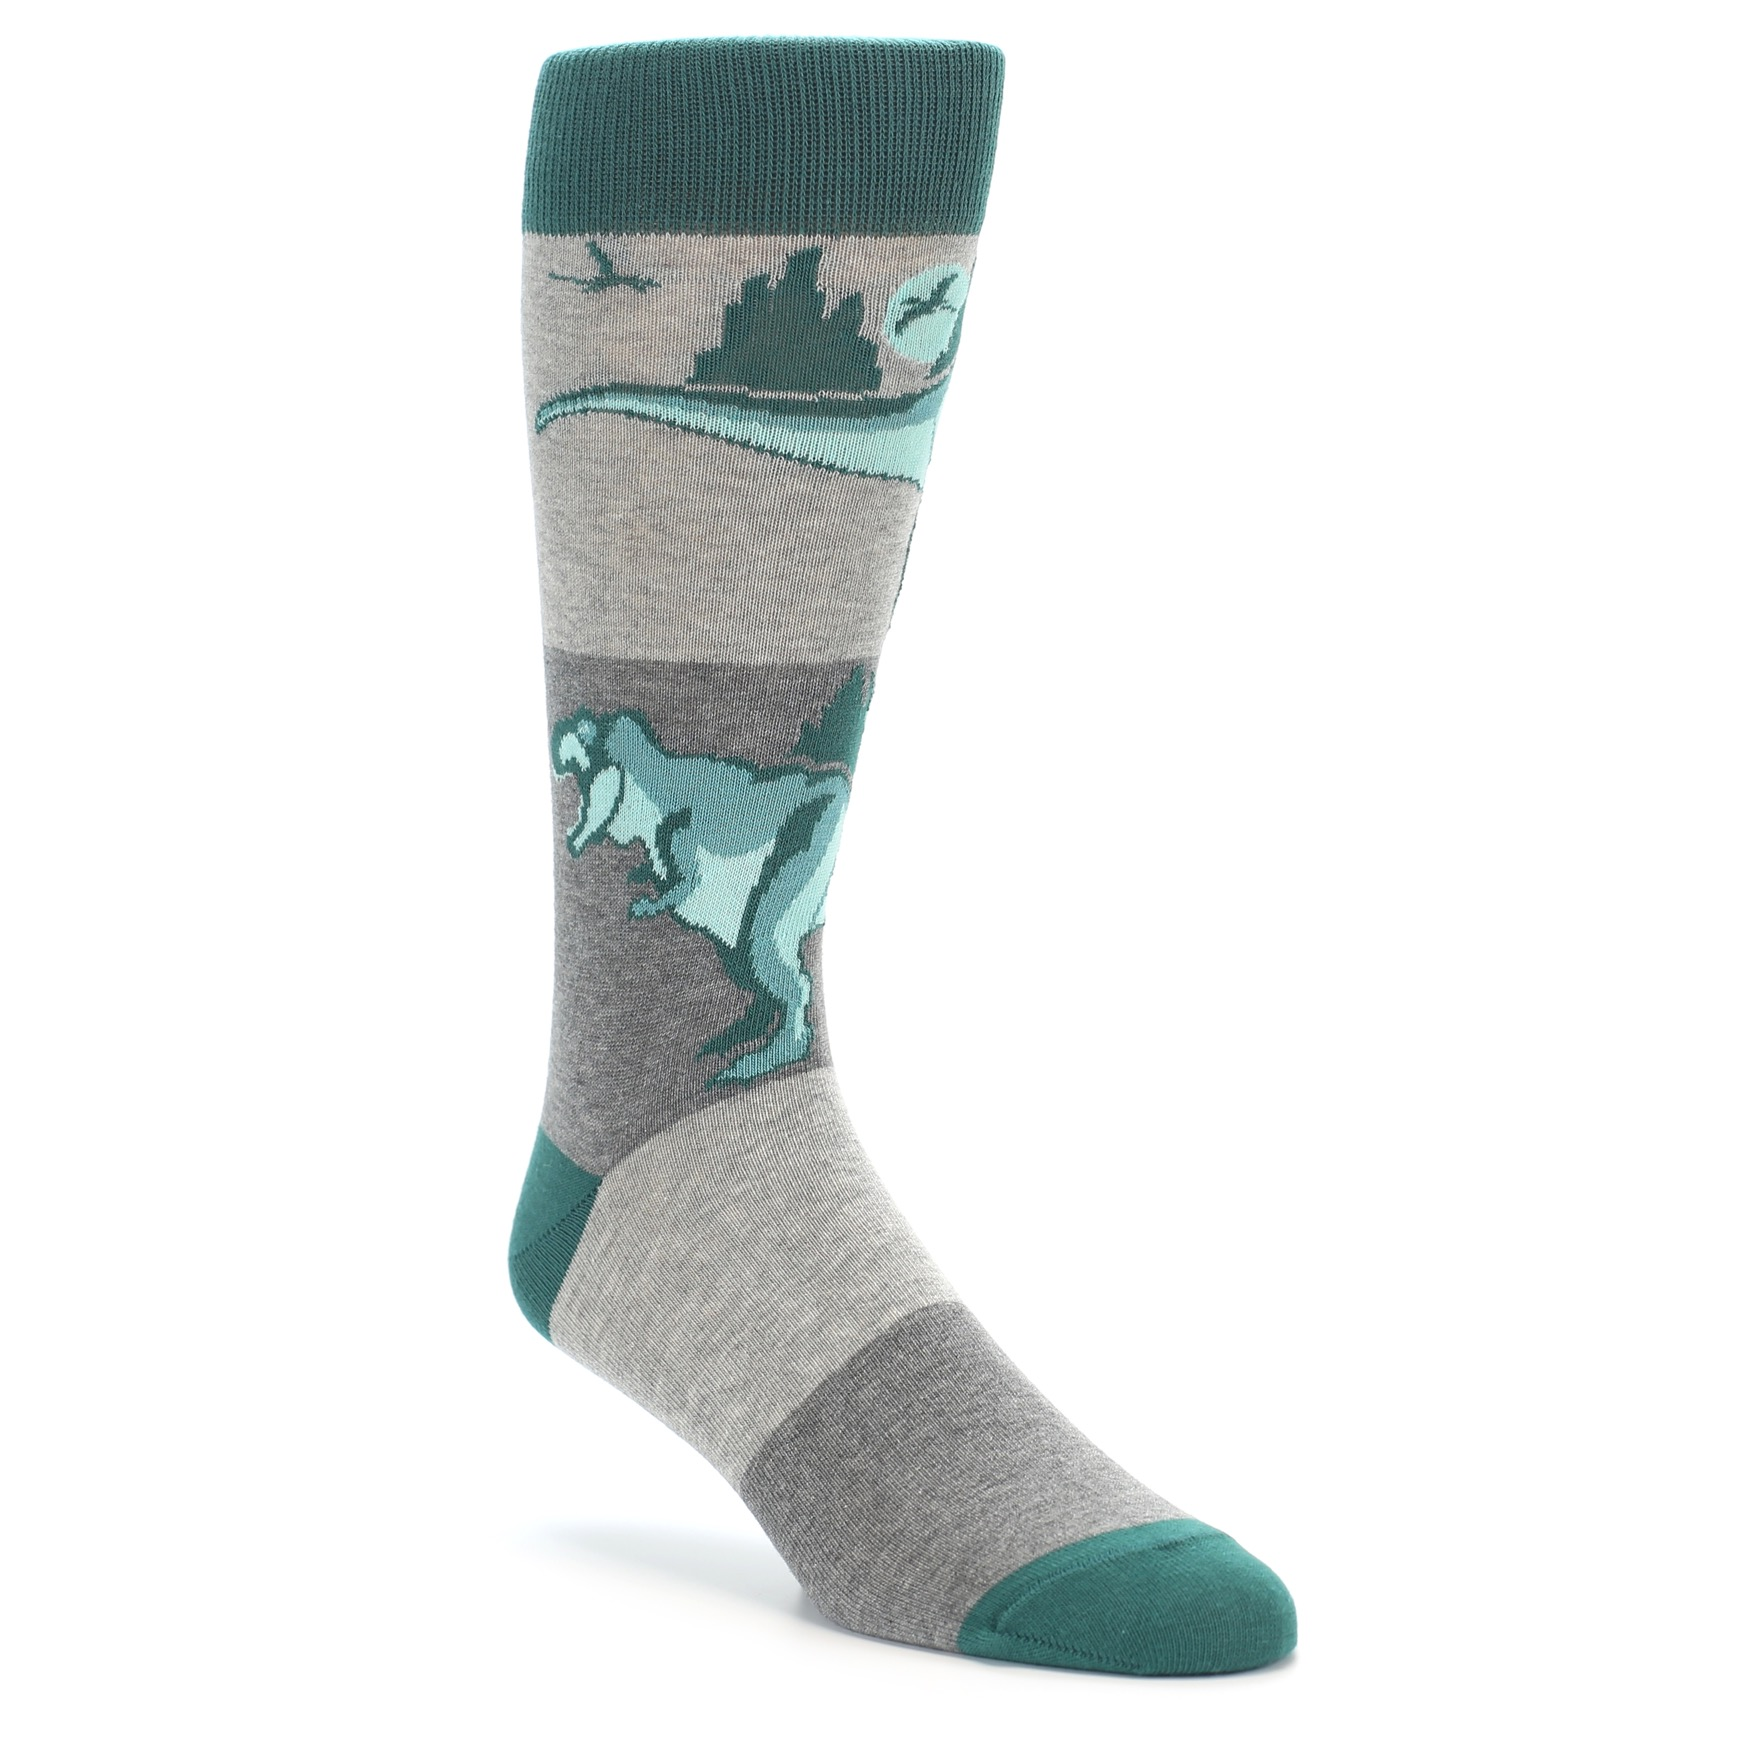 boldSOCKS – boldSOCKS offers uniquely colorful- patterned- fun ...